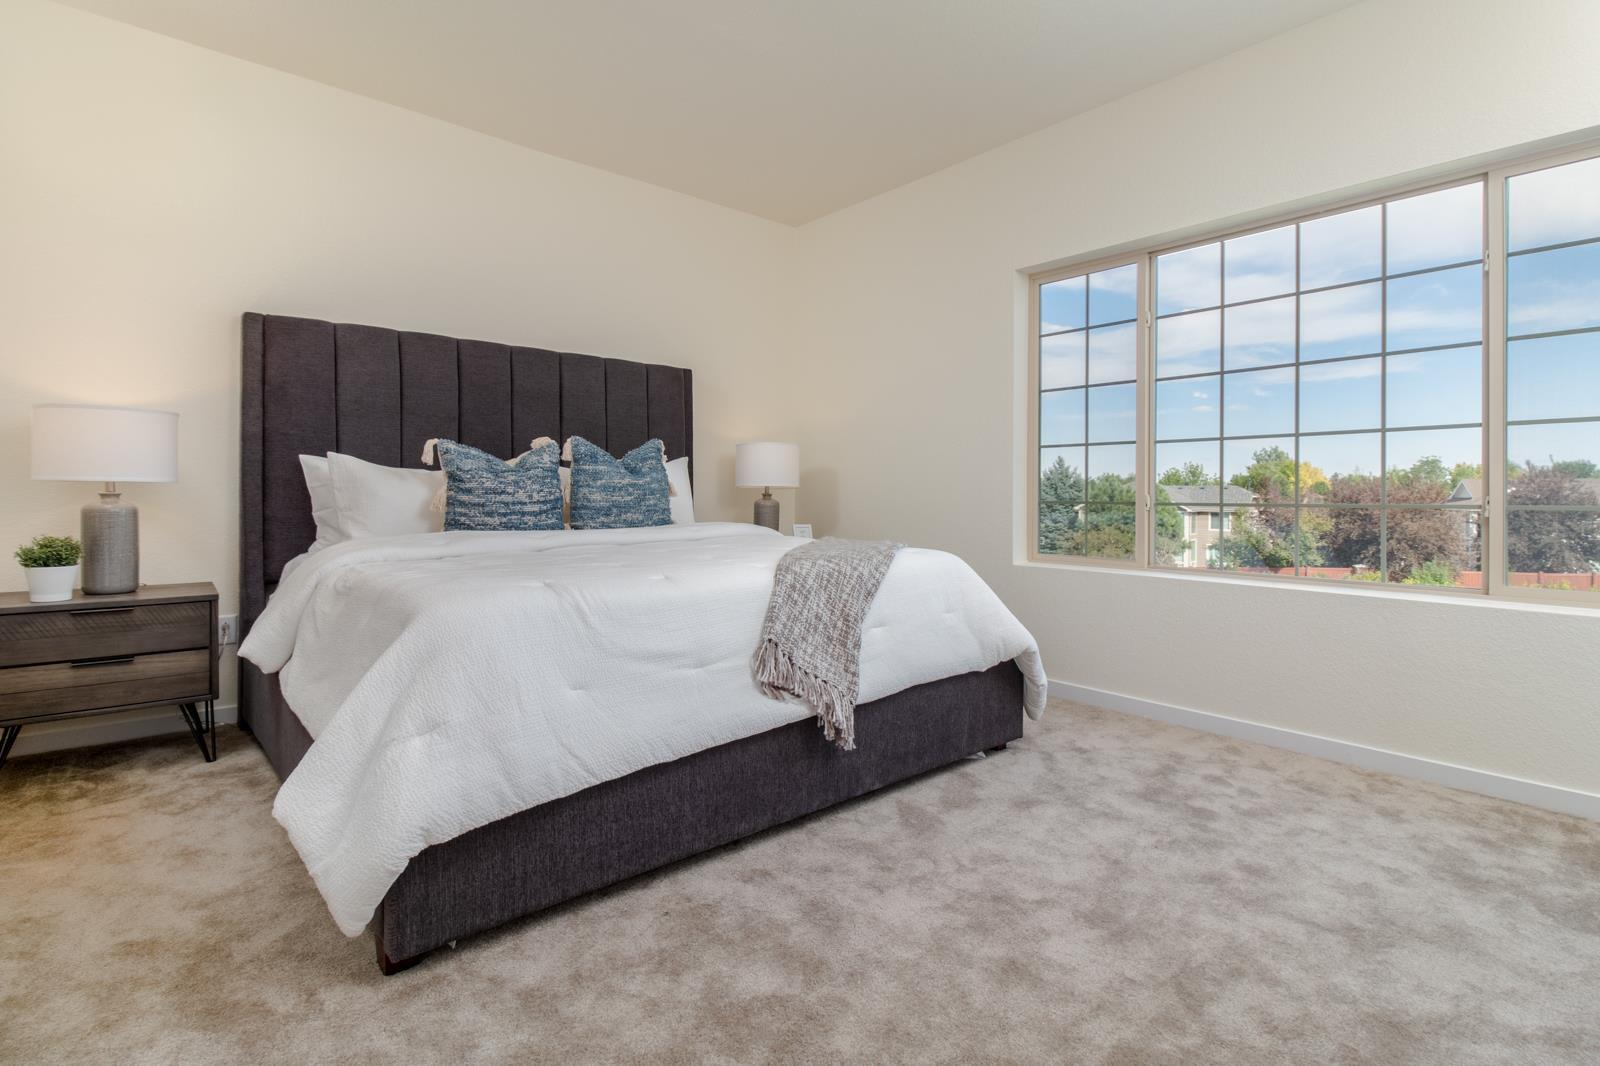 Bedroom featured in the Mountain Stream By BLVDWAY Communities in Denver, CO